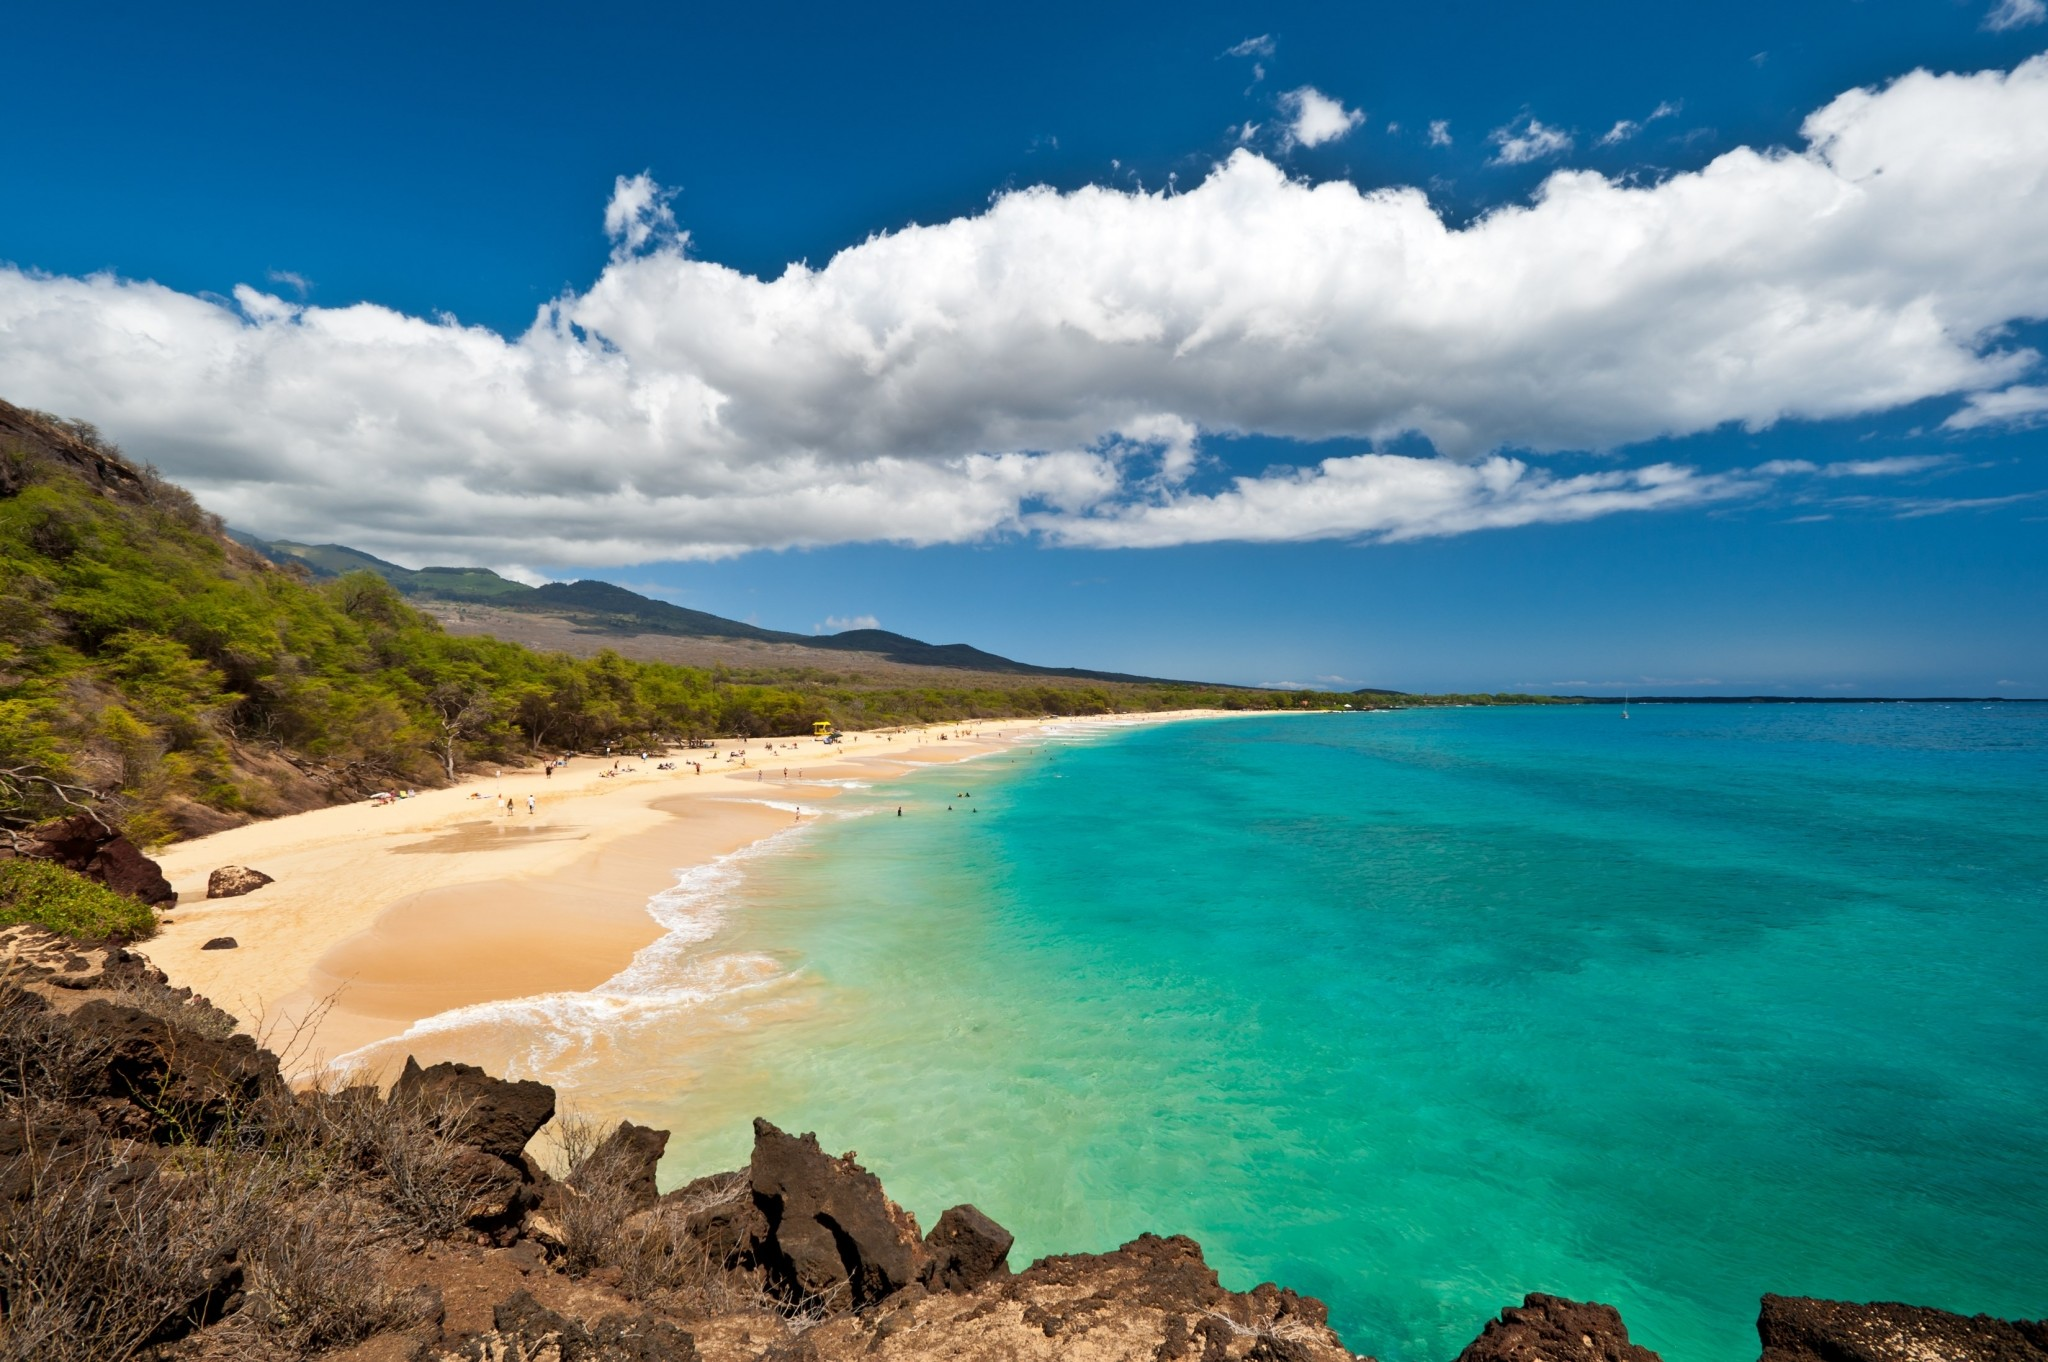 2048x1362 hawaii wallpaper free desktop wallpapers